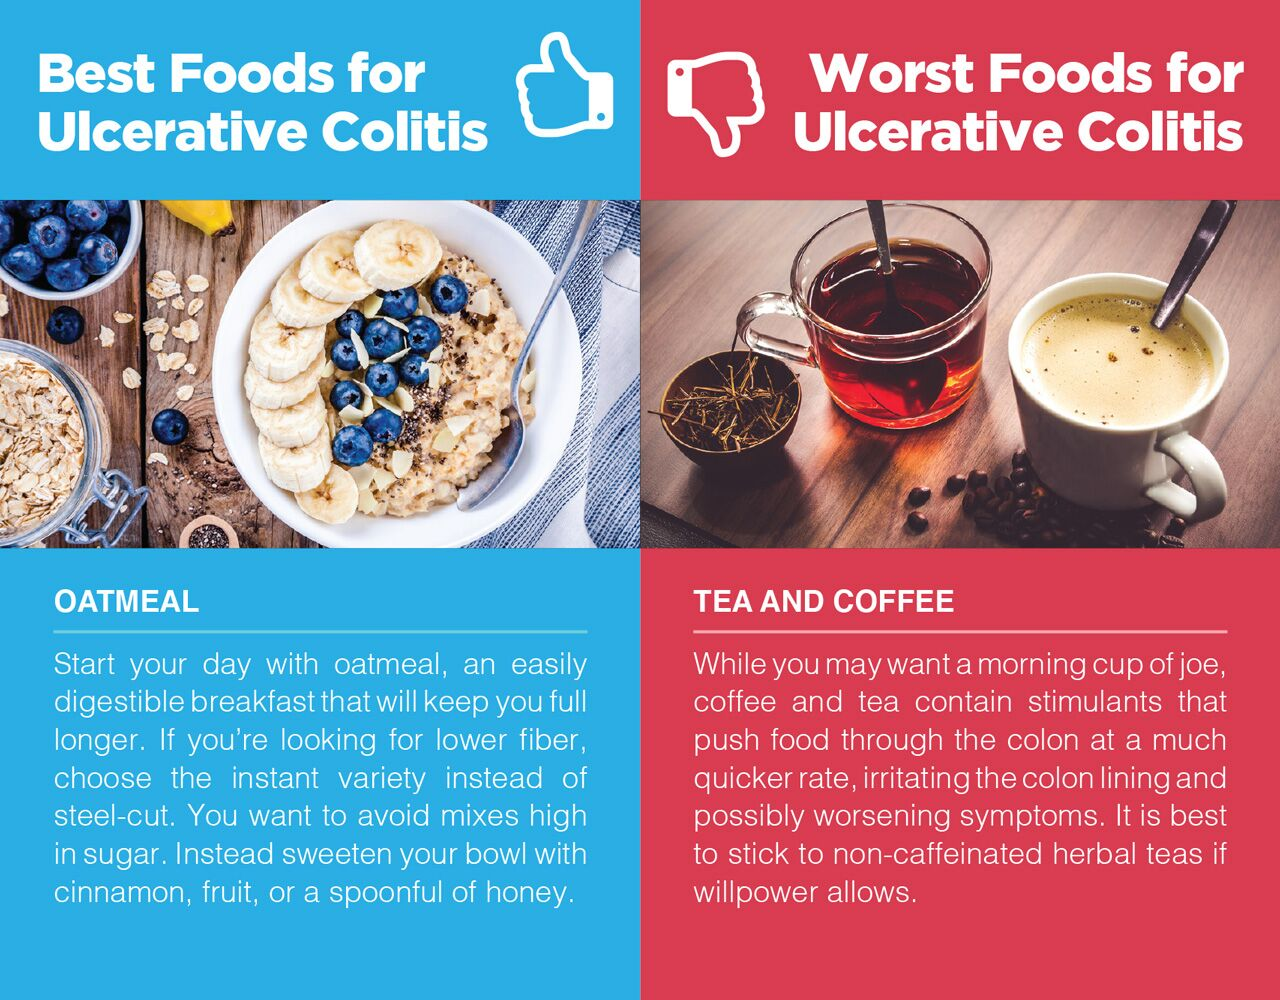 Best and worst foods for ulcerative colitis